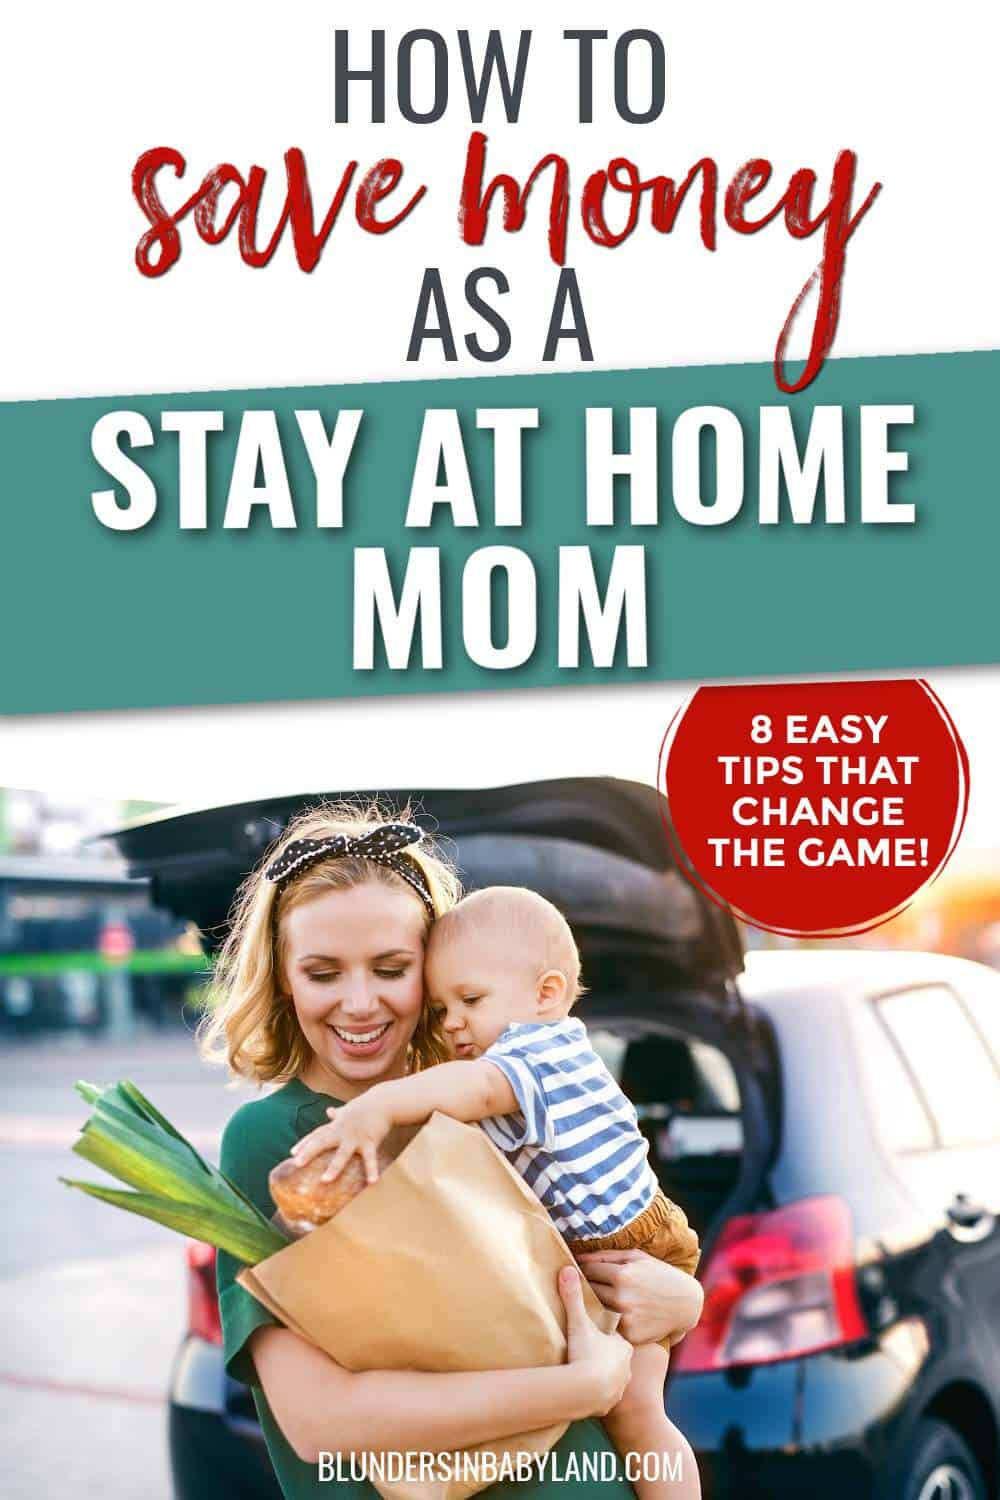 How to Save Money as a Stay at Home Mom (2)